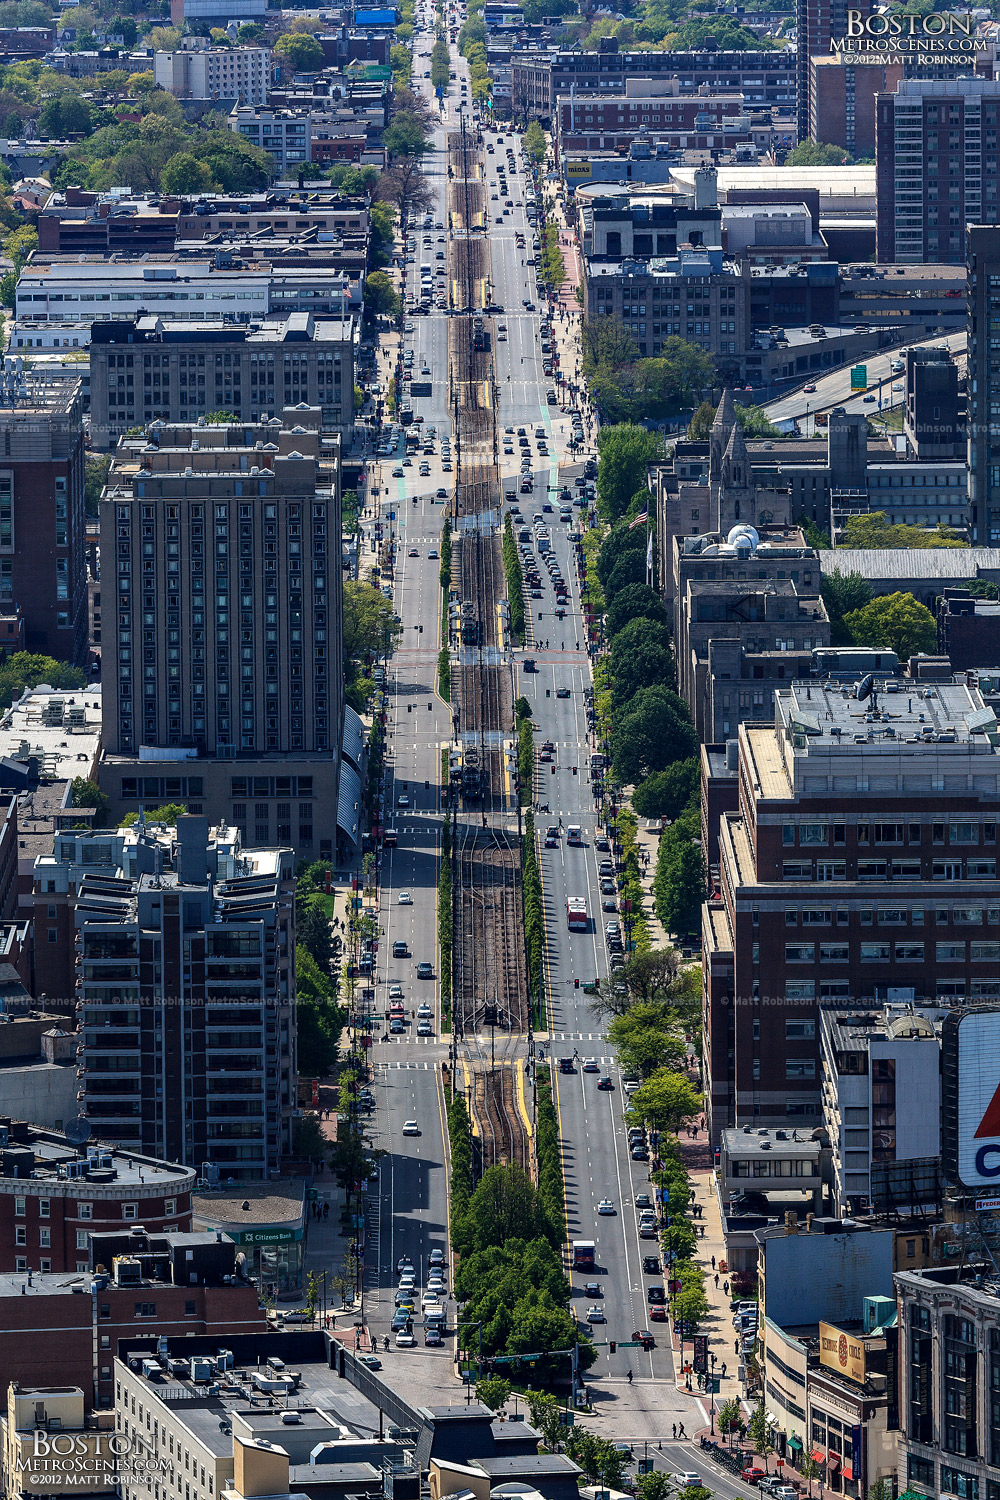 Long view of Commonwealth Avenue in Boston